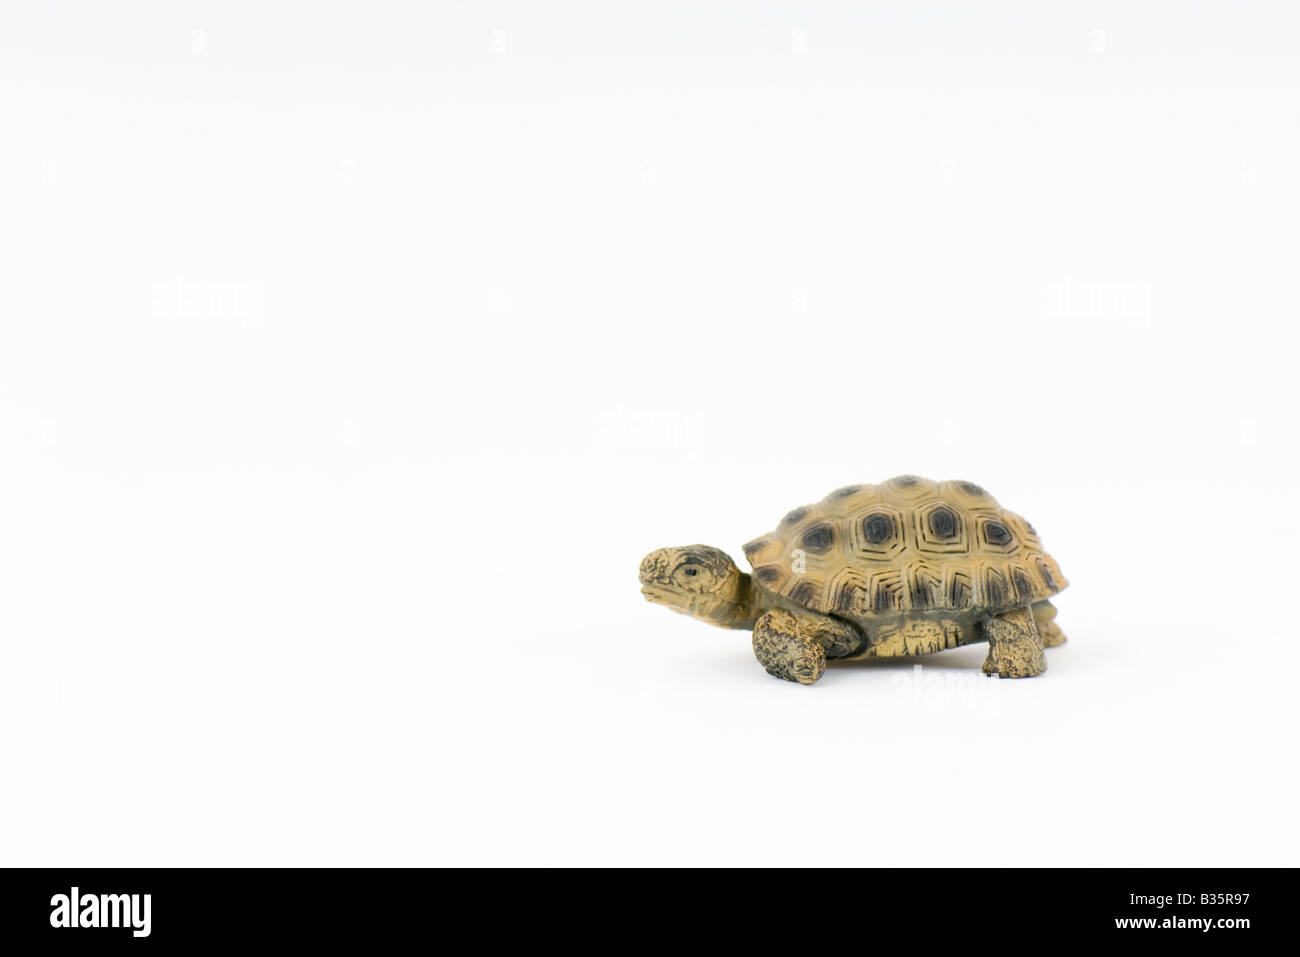 Toy turtle, side view, close-up Stock Photo